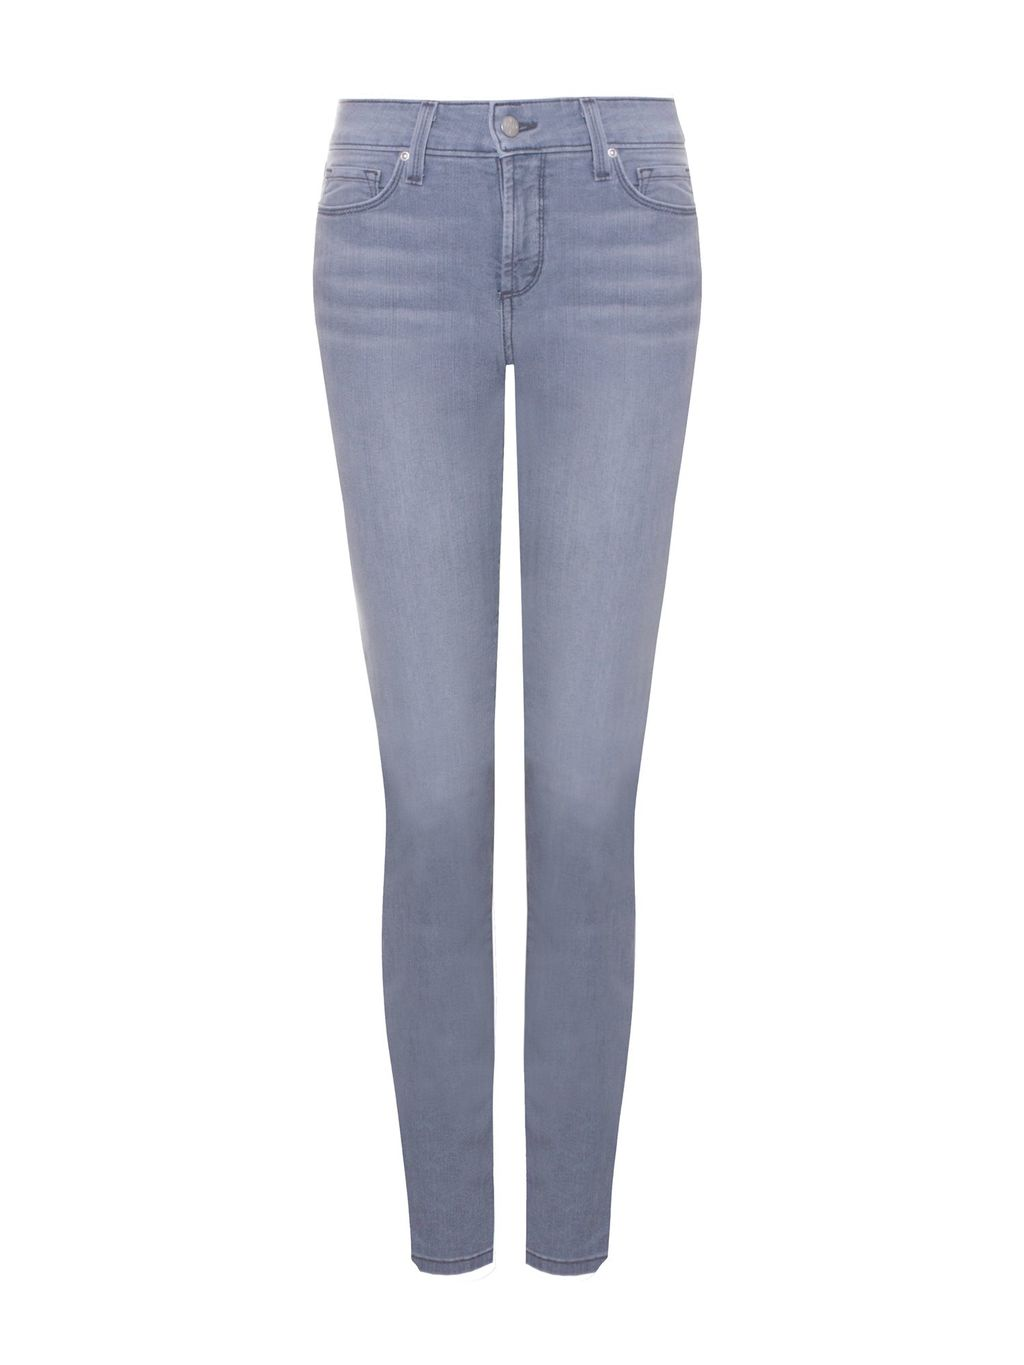 Skinny In Lightweight Denim Petite, Grey - style: skinny leg; length: standard; pattern: plain; pocket detail: traditional 5 pocket; waist: mid/regular rise; predominant colour: lilac; occasions: casual; fibres: cotton - stretch; jeans detail: whiskering, shading down centre of thigh, washed/faded; texture group: denim; pattern type: fabric; season: s/s 2015; wardrobe: highlight